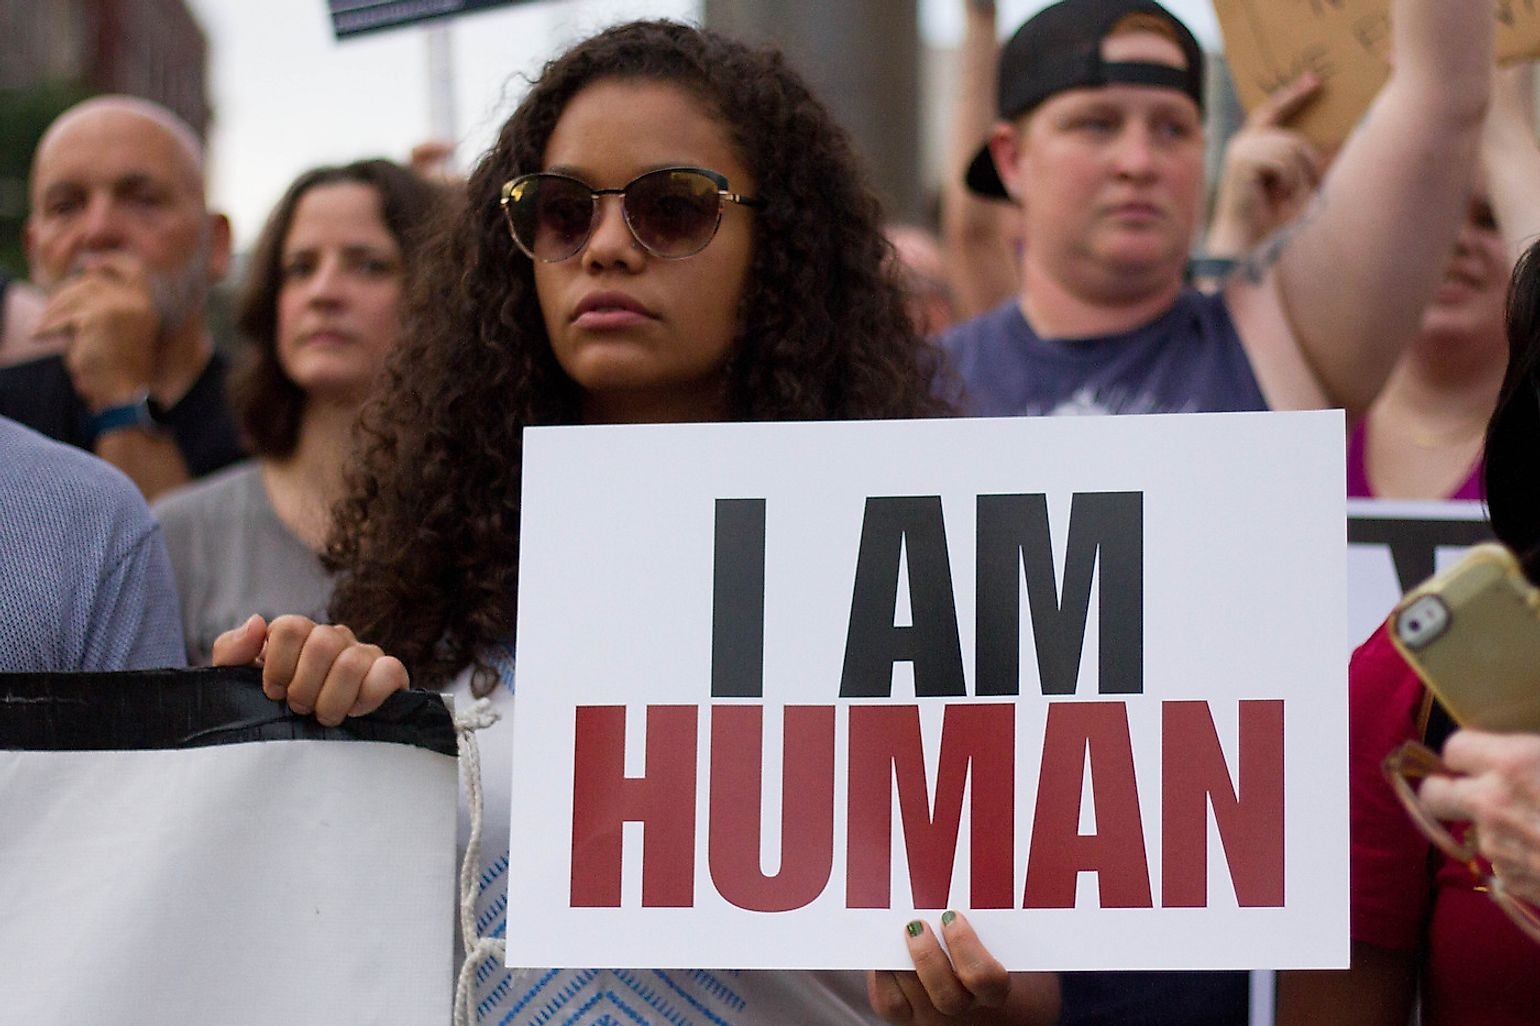 Demonstrators in Philadelphia participate in a rally against white nationalism and other forms of racism and hate organized by the interfaith advocacy organization. Image credit: Michael Candelori/Shutterstock.com